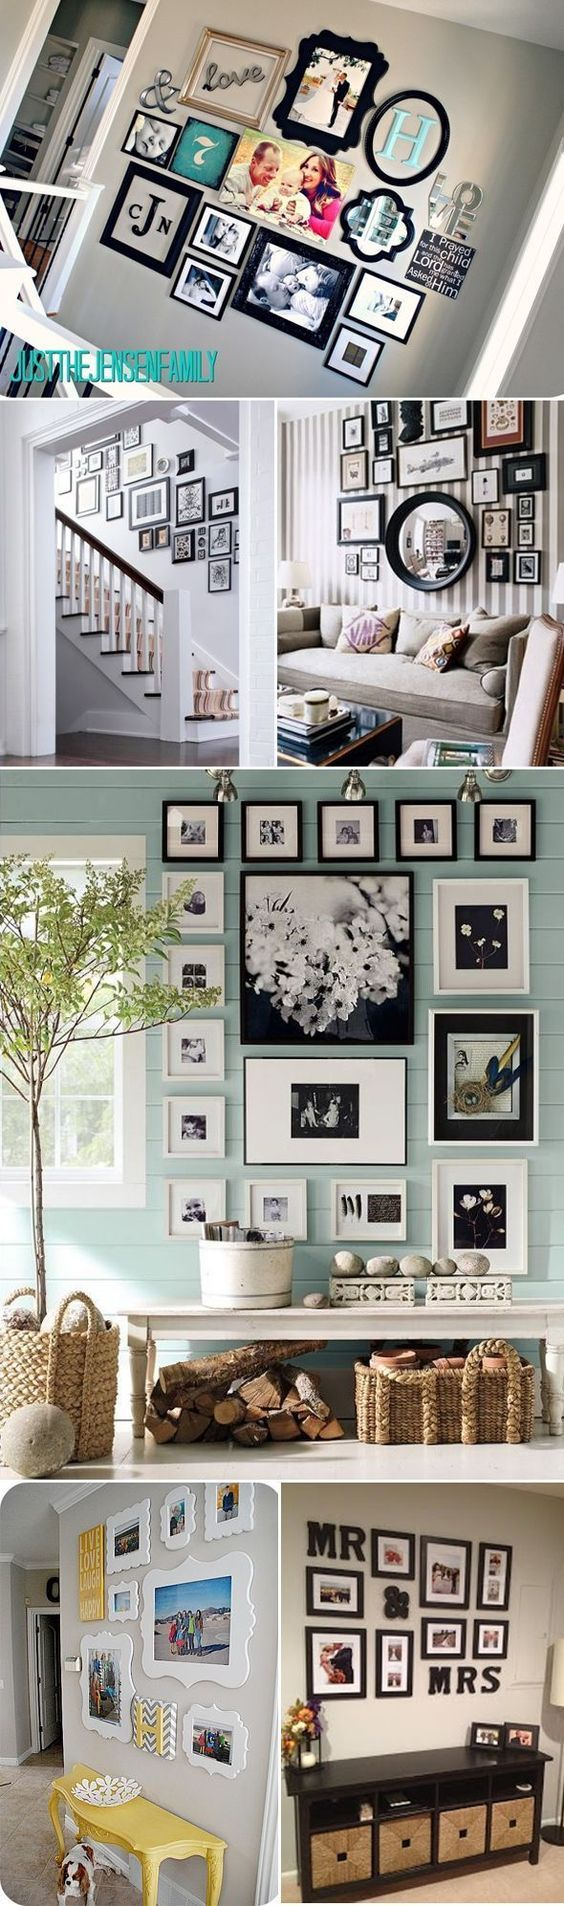 19 Unique and Stylish DIYs for Photo Collages #homedecorationcrafts #homedecorationhacks #DIYhome